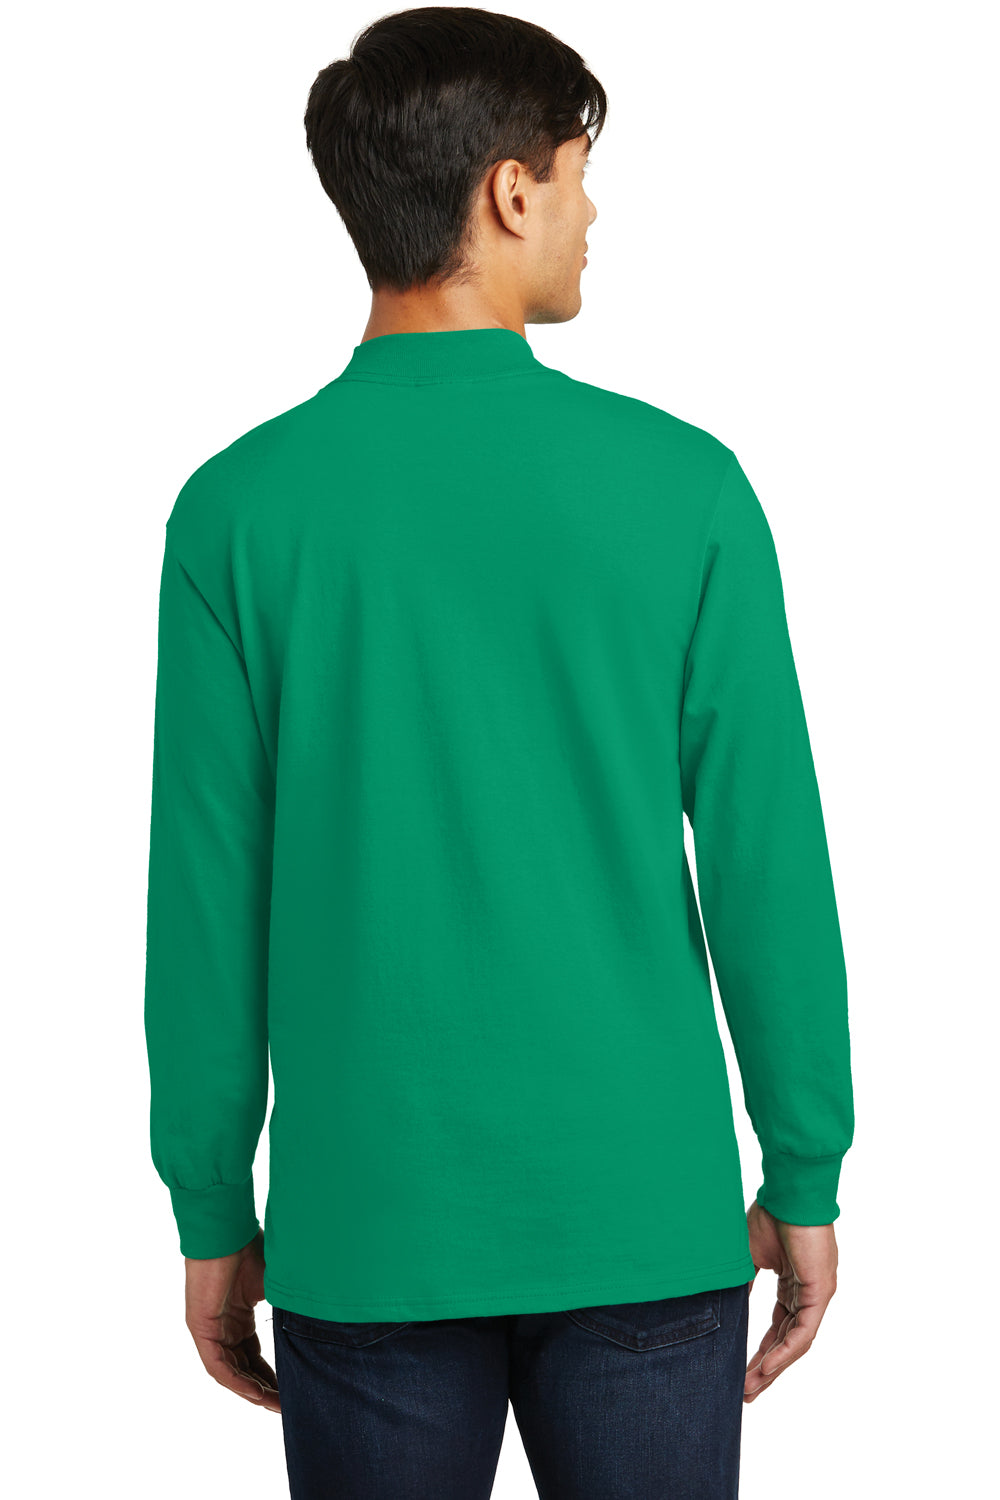 Port & Company PC61M Mens Essential Long Sleeve Mock Neck T-Shirt Kelly Green Back